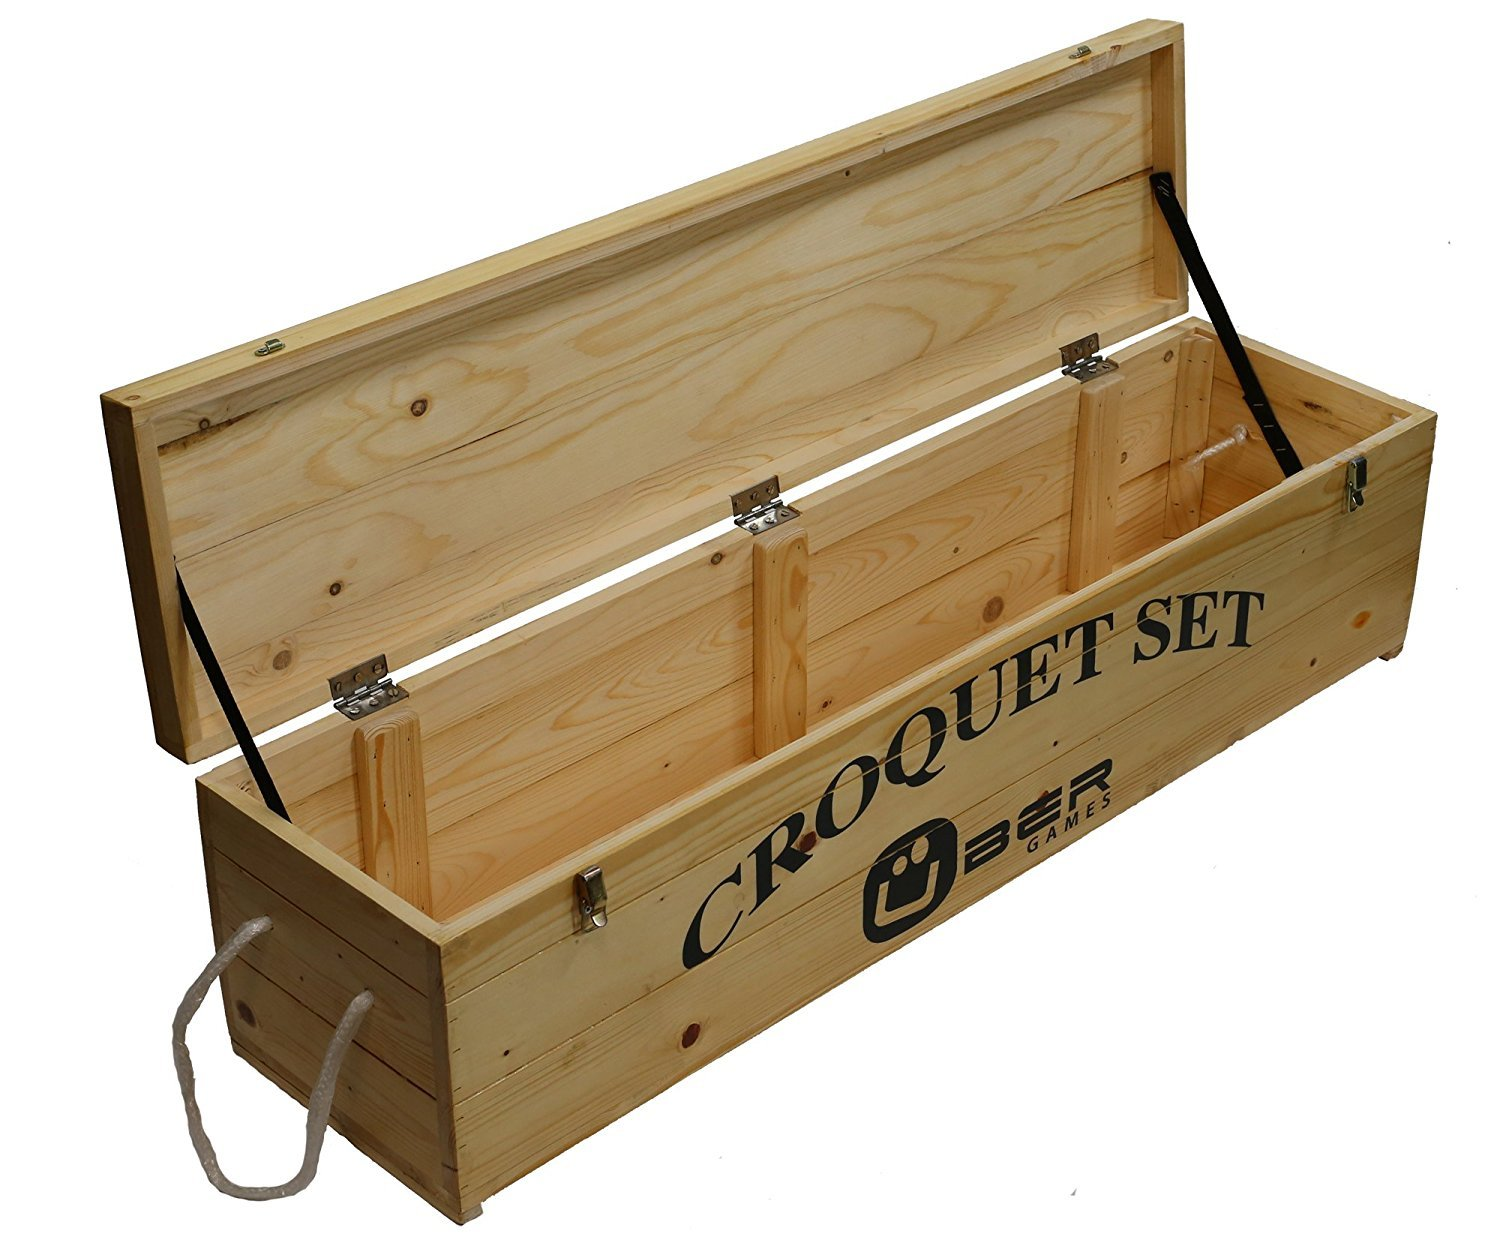 Uber Games Wooden Storage Box for 9-Wicket Croquet Game Set - Pine - 6 Player